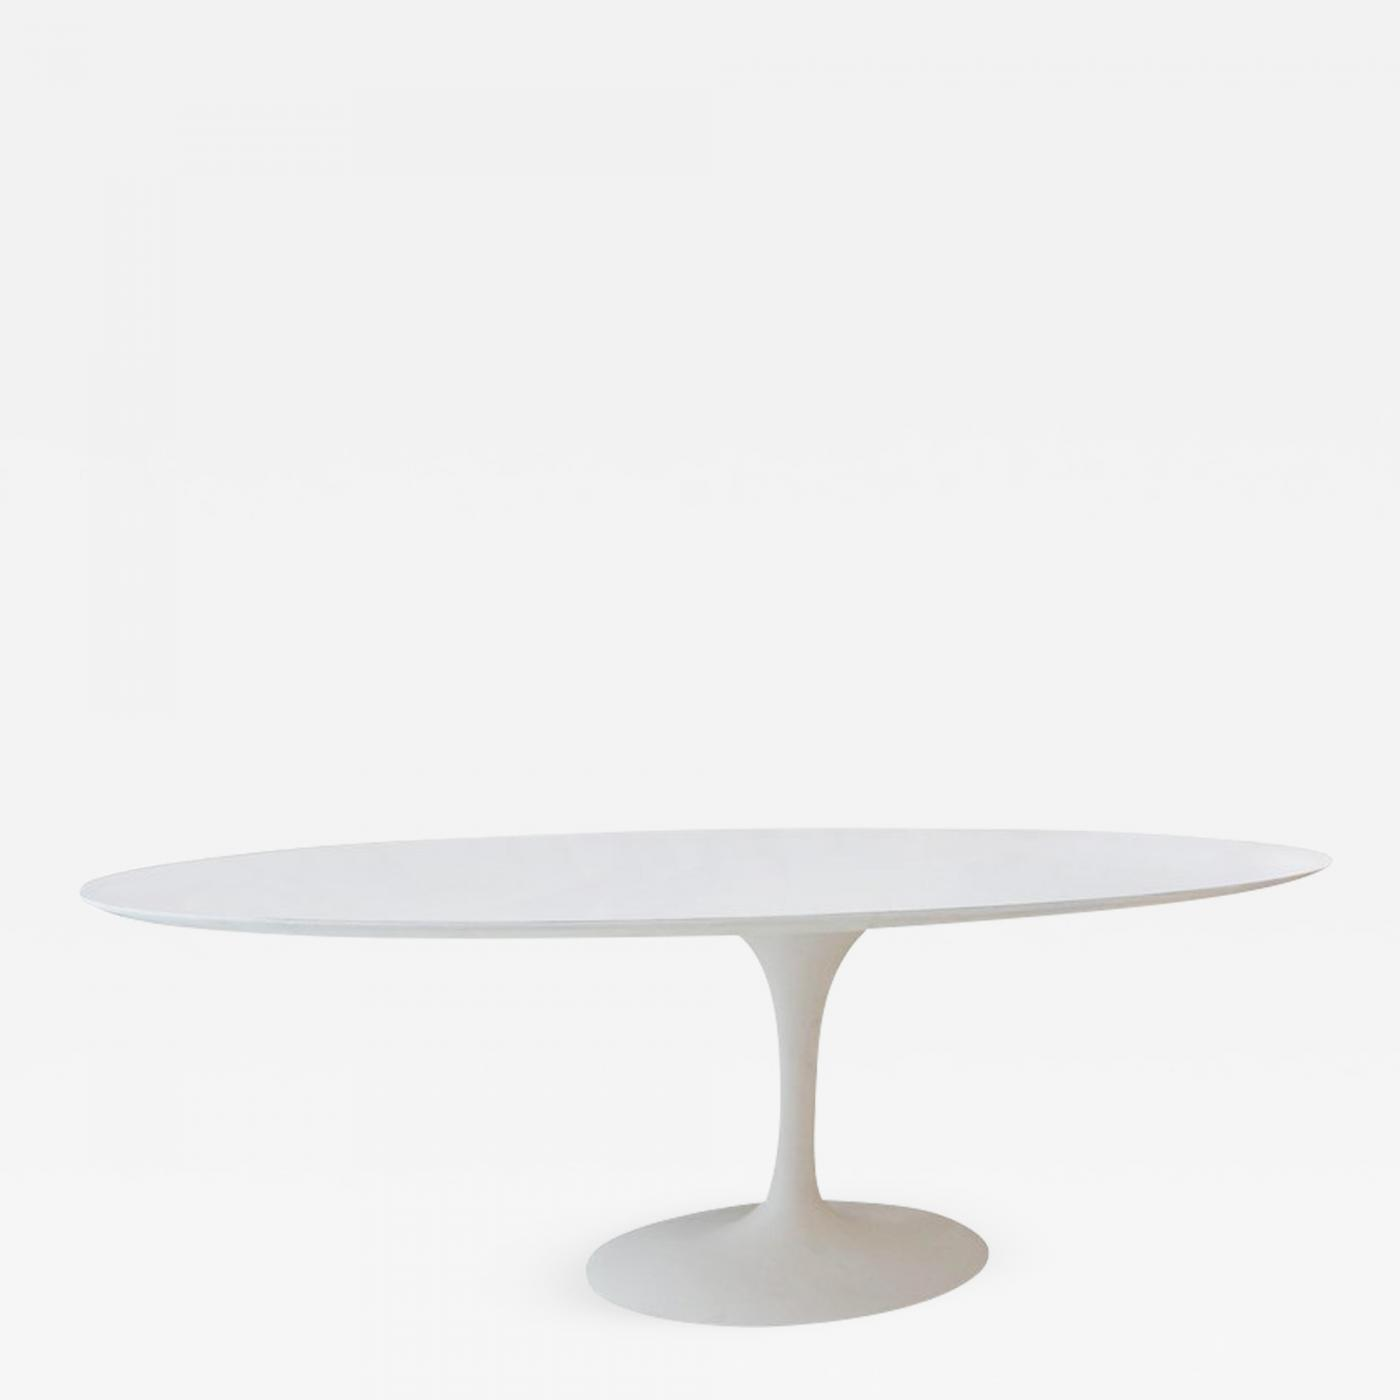 Saarinen Knoll Table Eero Saarinen Vintage Elliptical Eero Saarinen Tulip Dining Table For Knoll